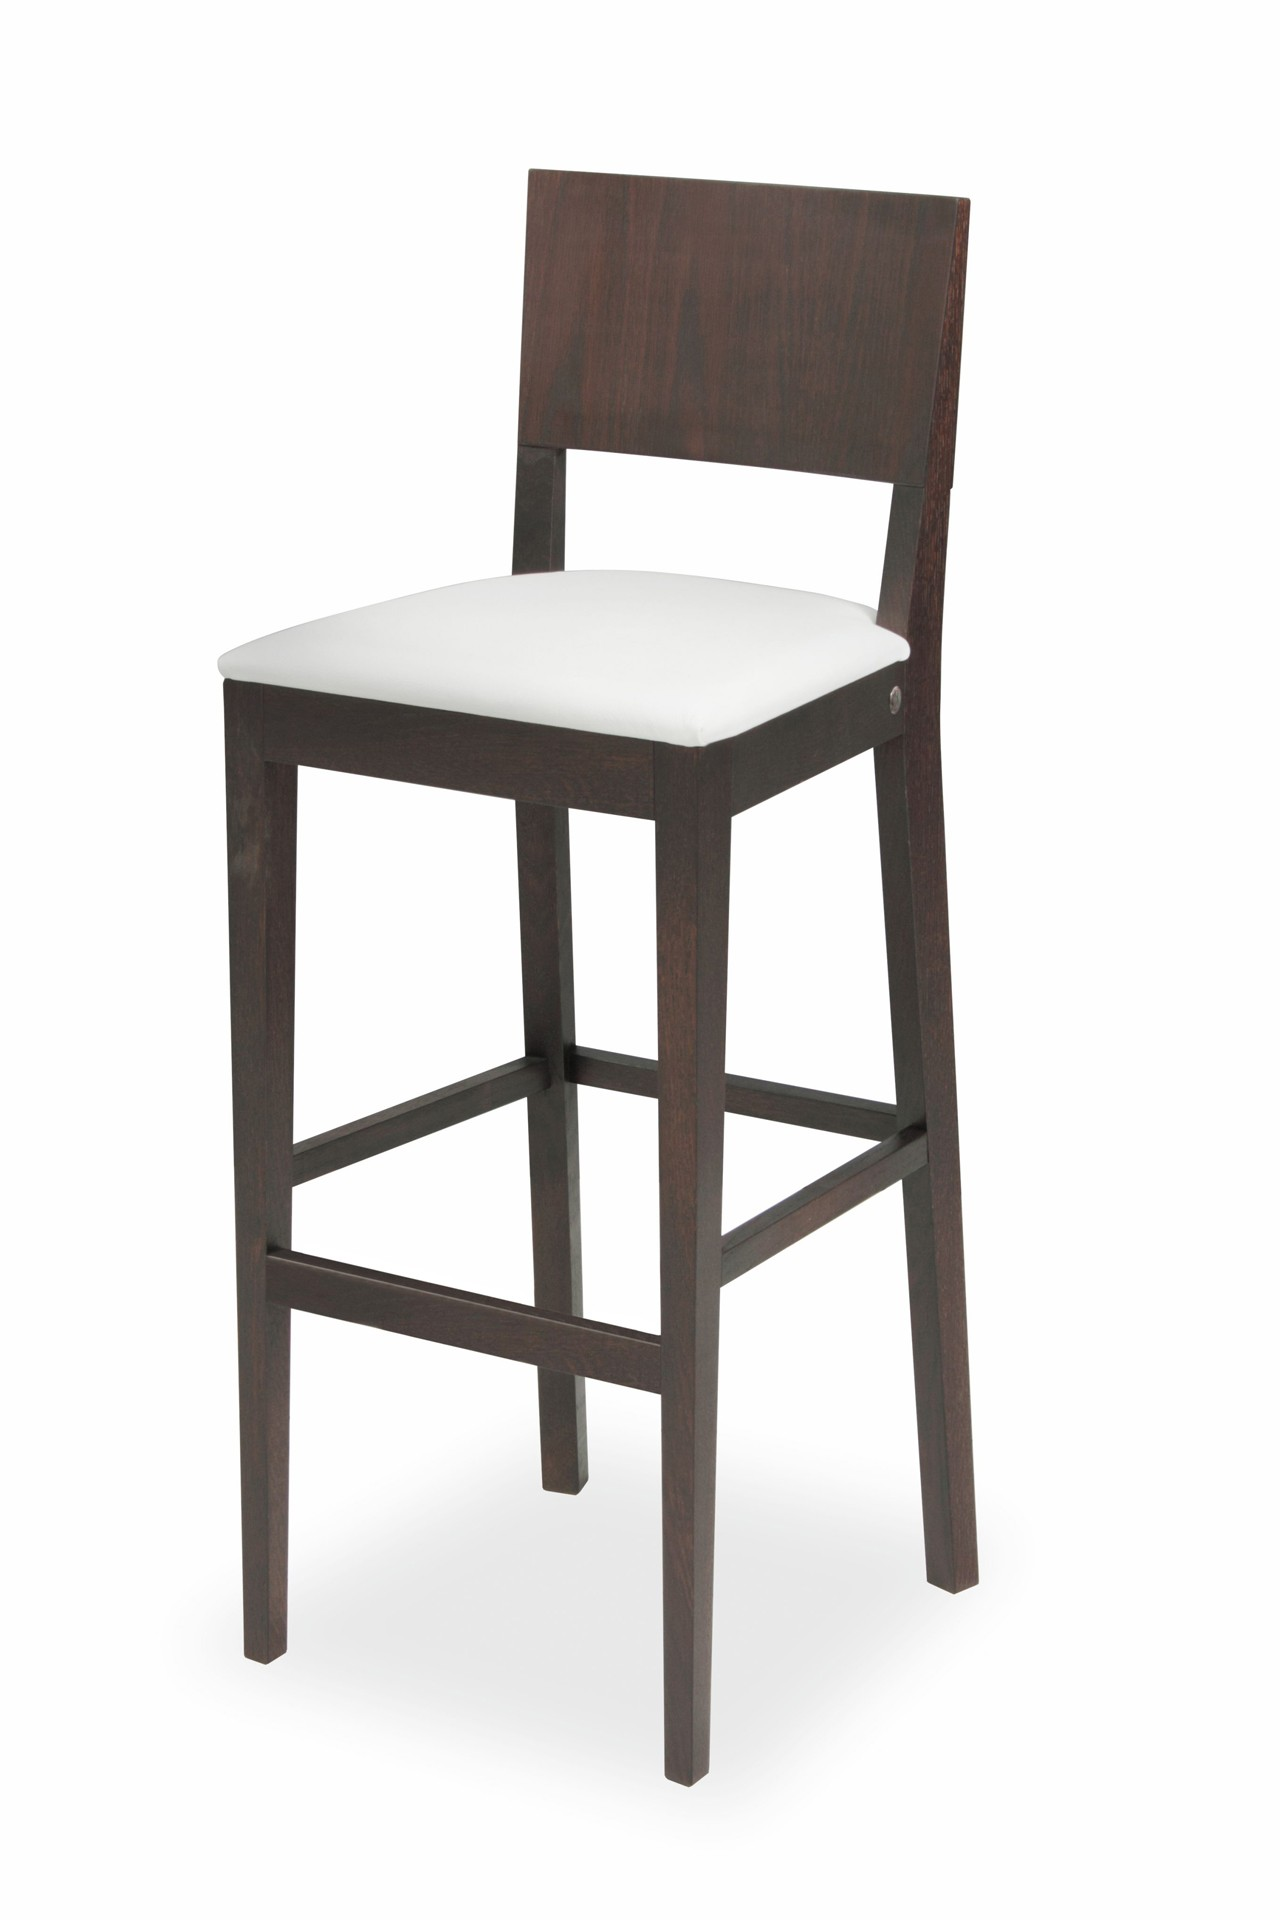 EDITA BAR STOOL with upholstered seat